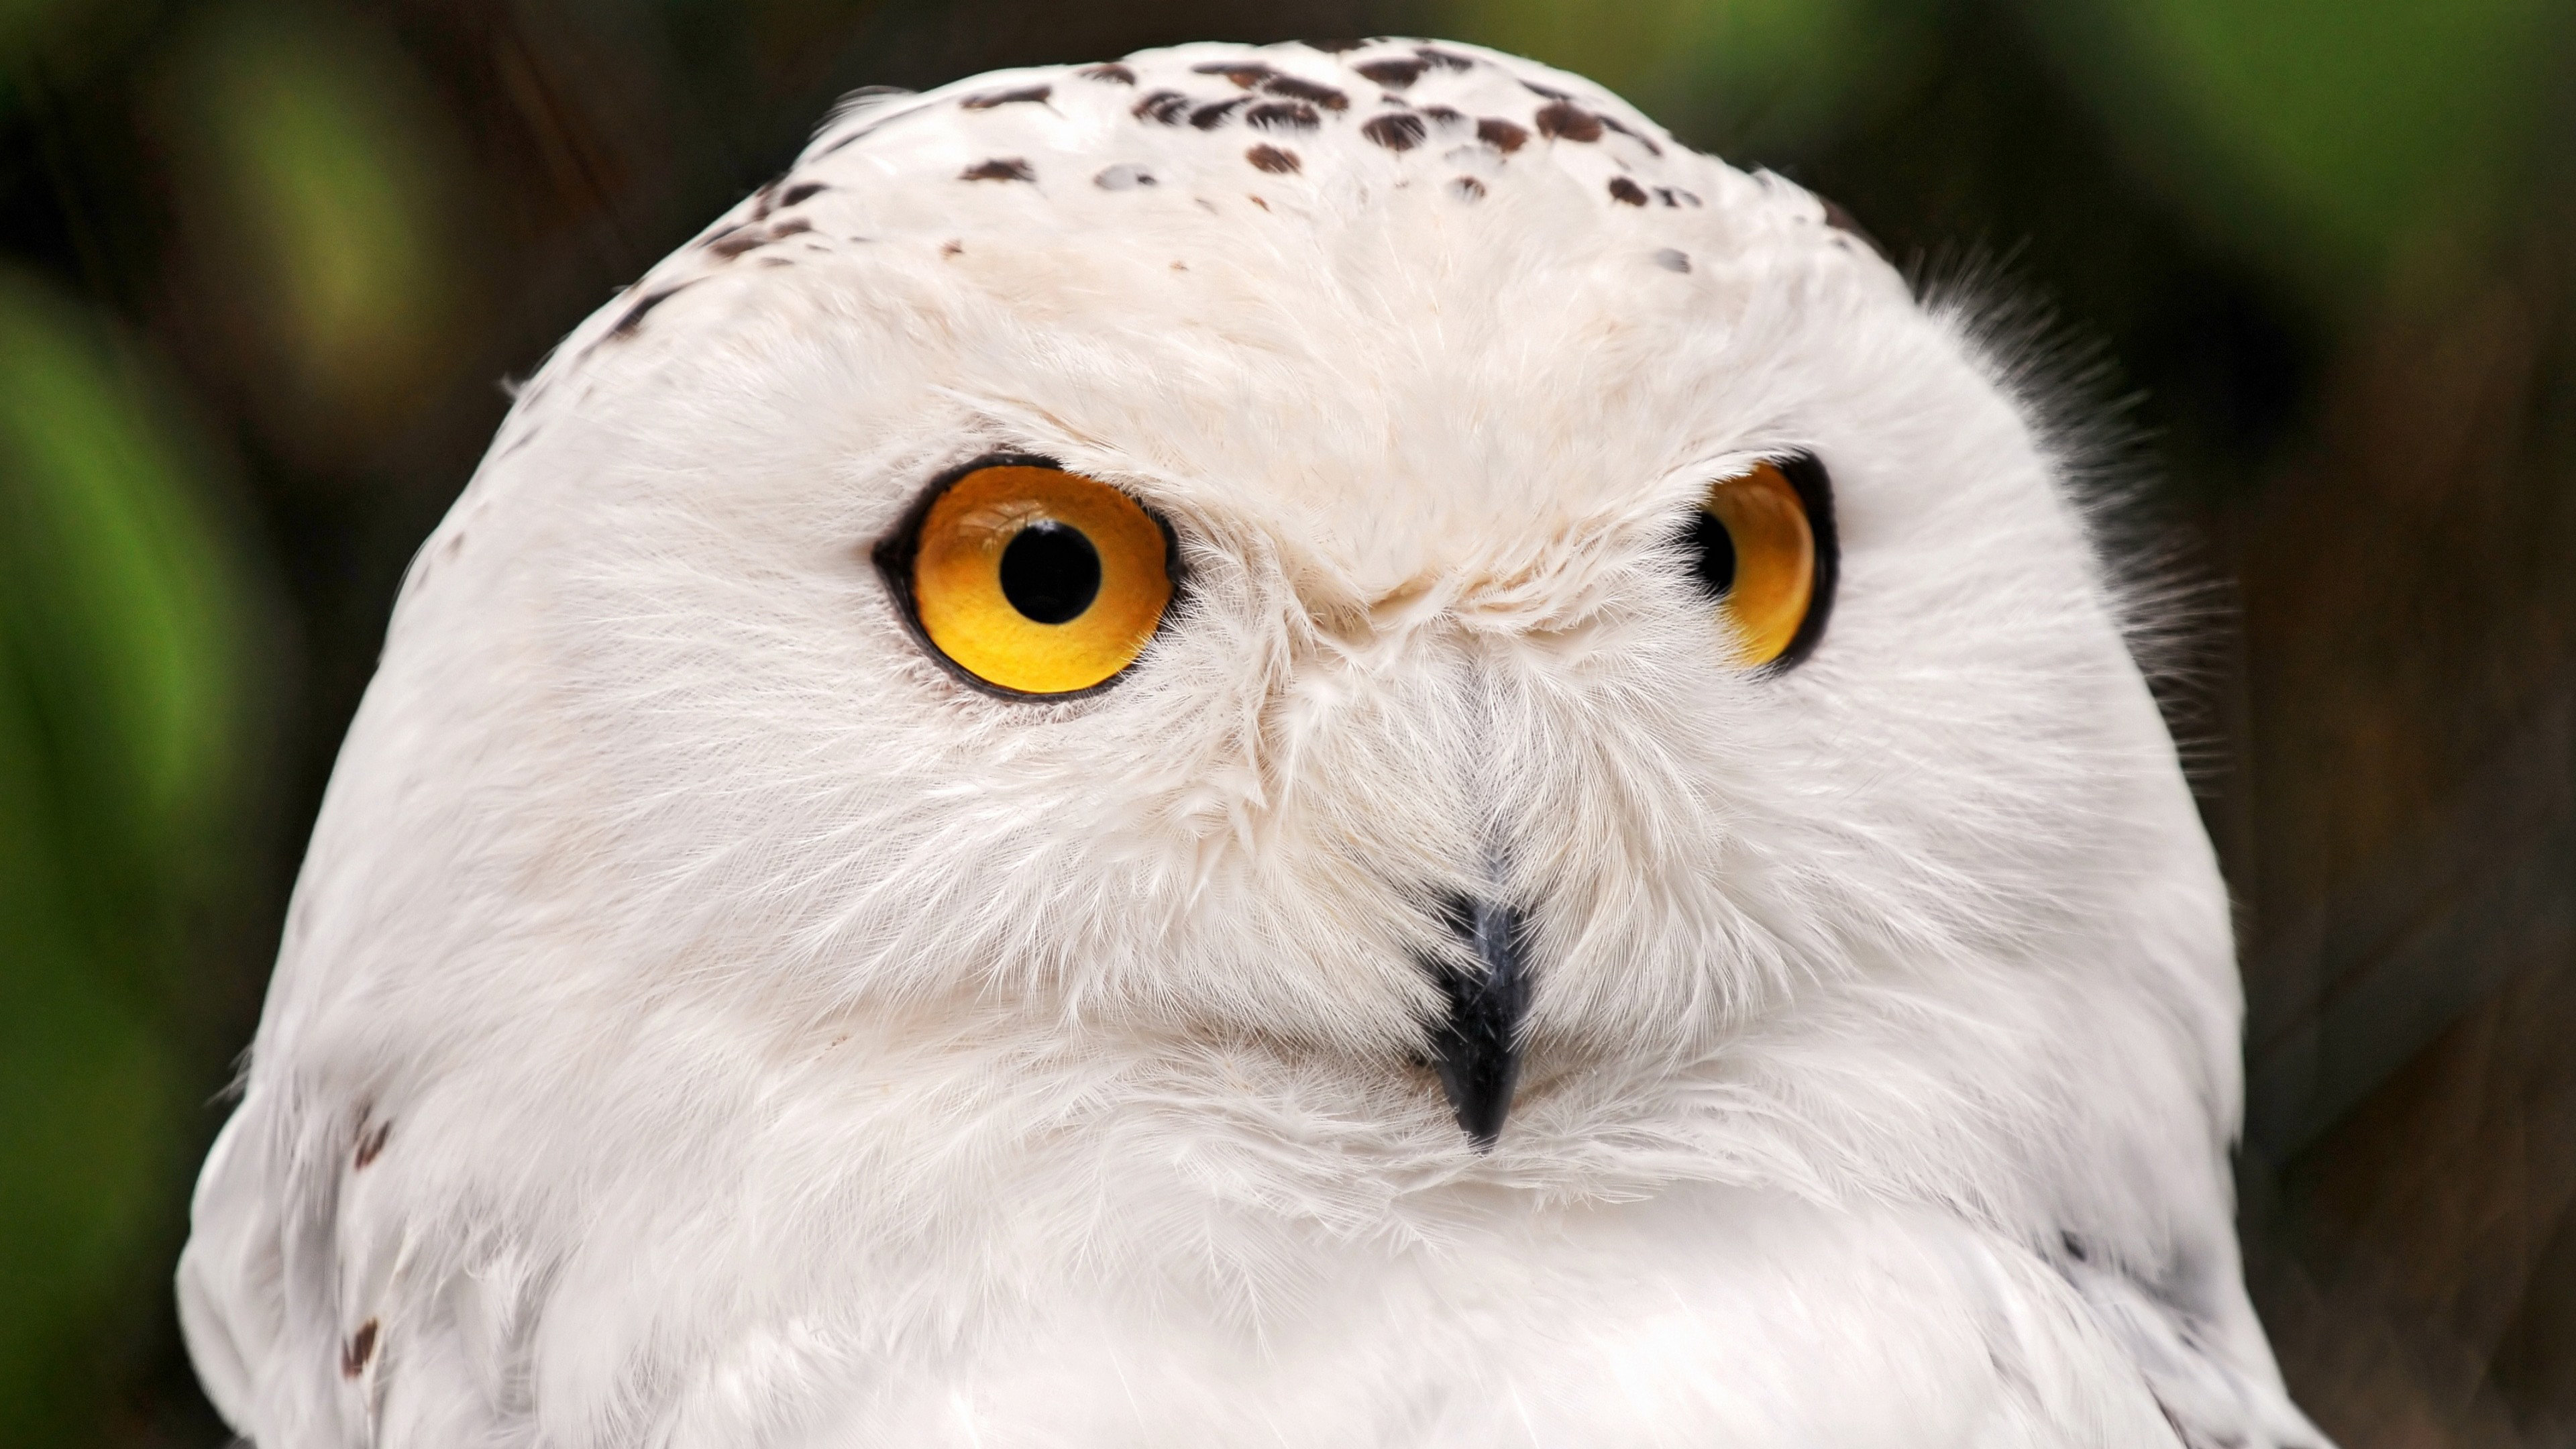 Download hd 4k Snowy Owl desktop background ID:26818 for free